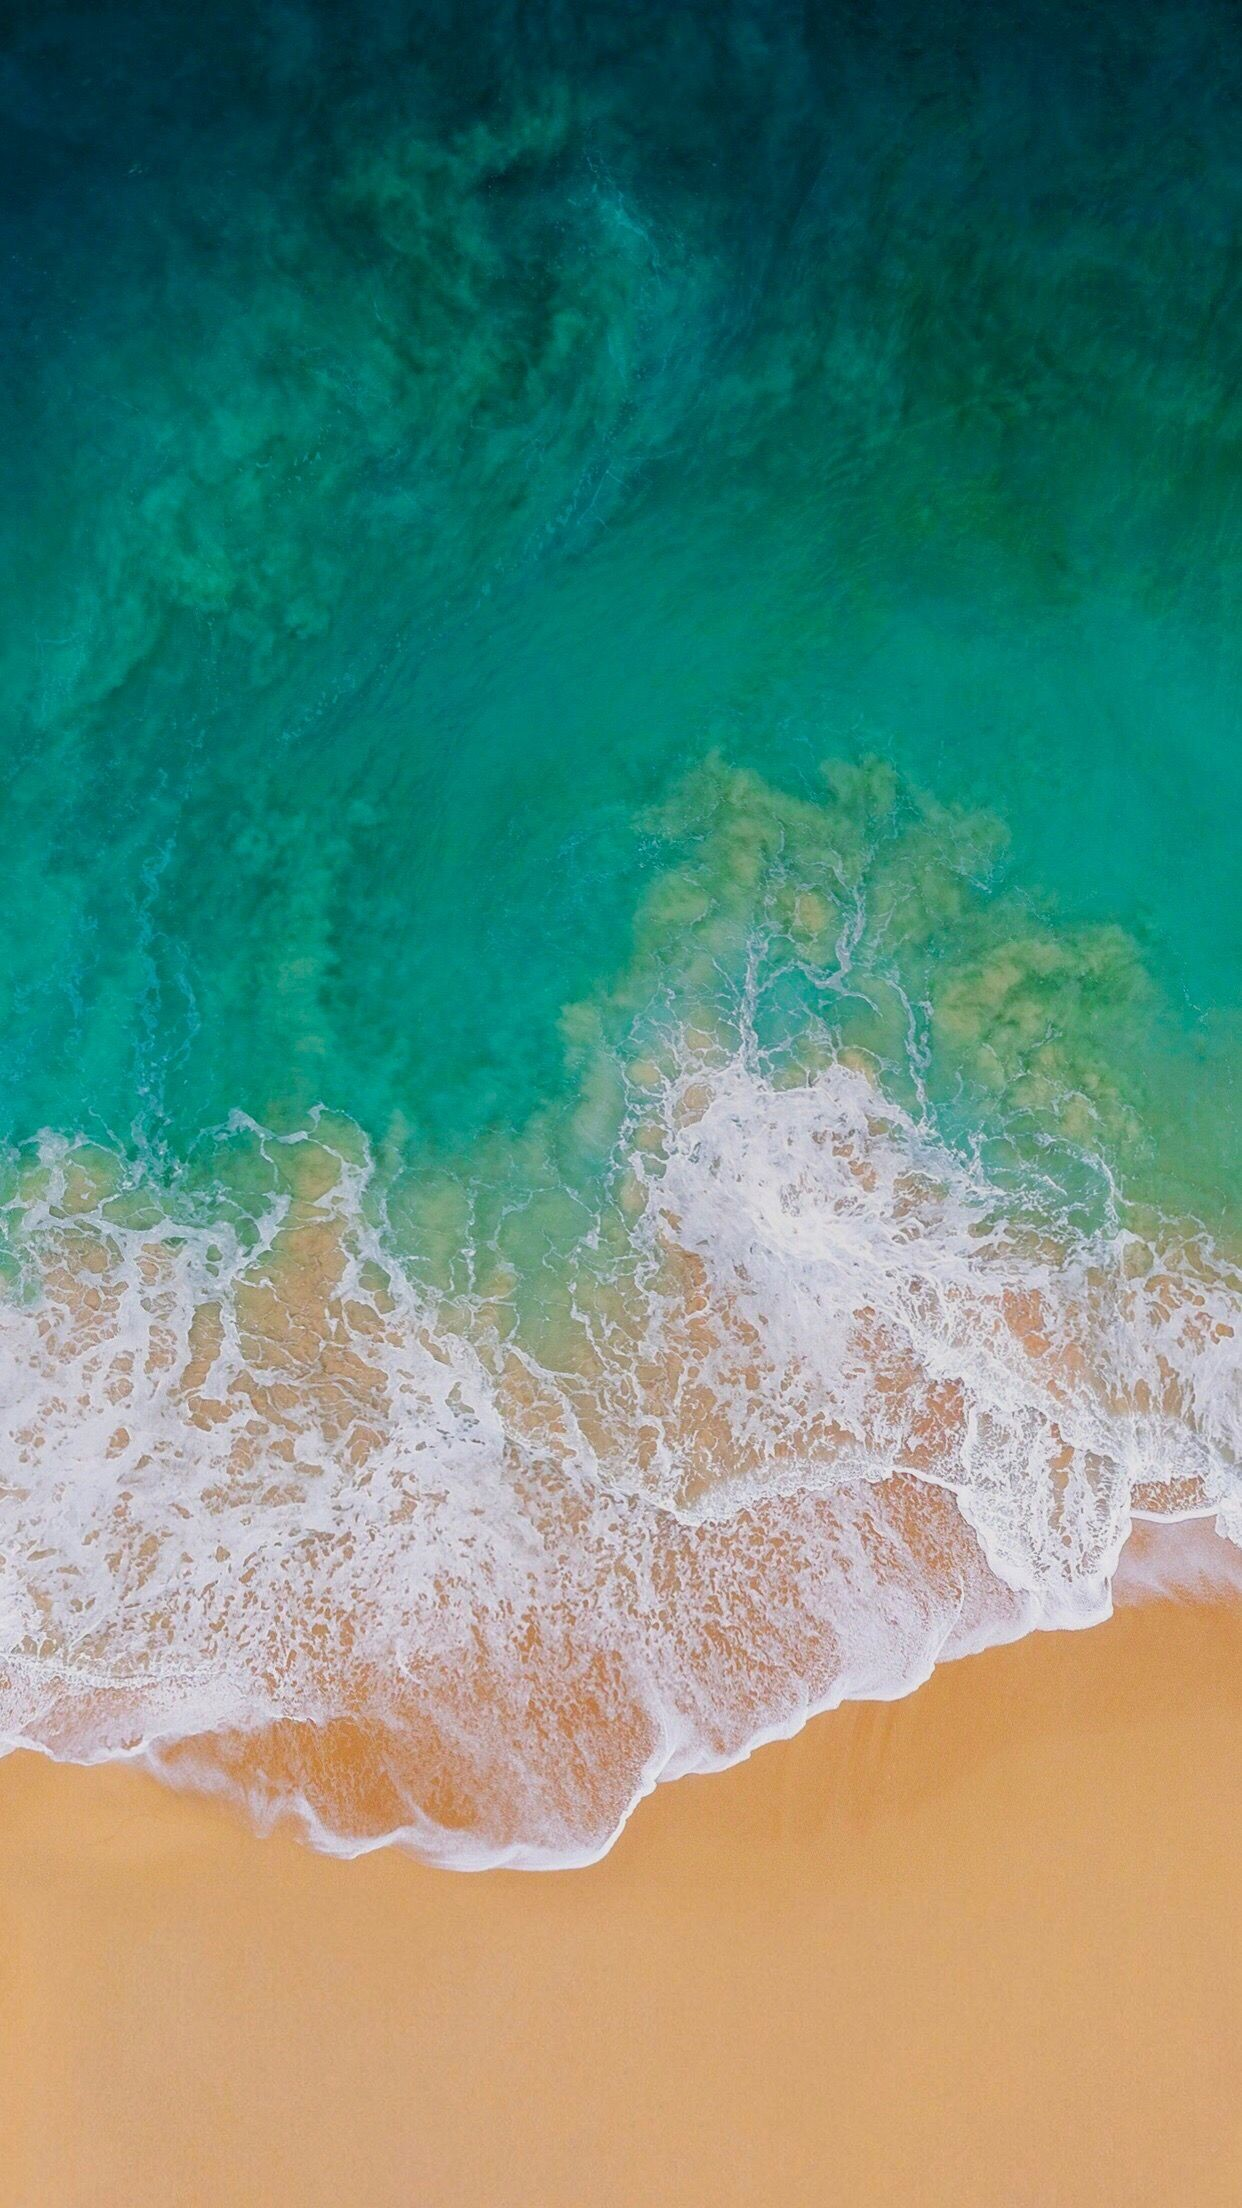 Res: 1242x2208, iOS 11, Turquoise, sand, beach, ocean, abstract, apple, wallpaper, iPhone,  clean, beauty, colour, iOS, minimal, iPhone 7, iPhone 6